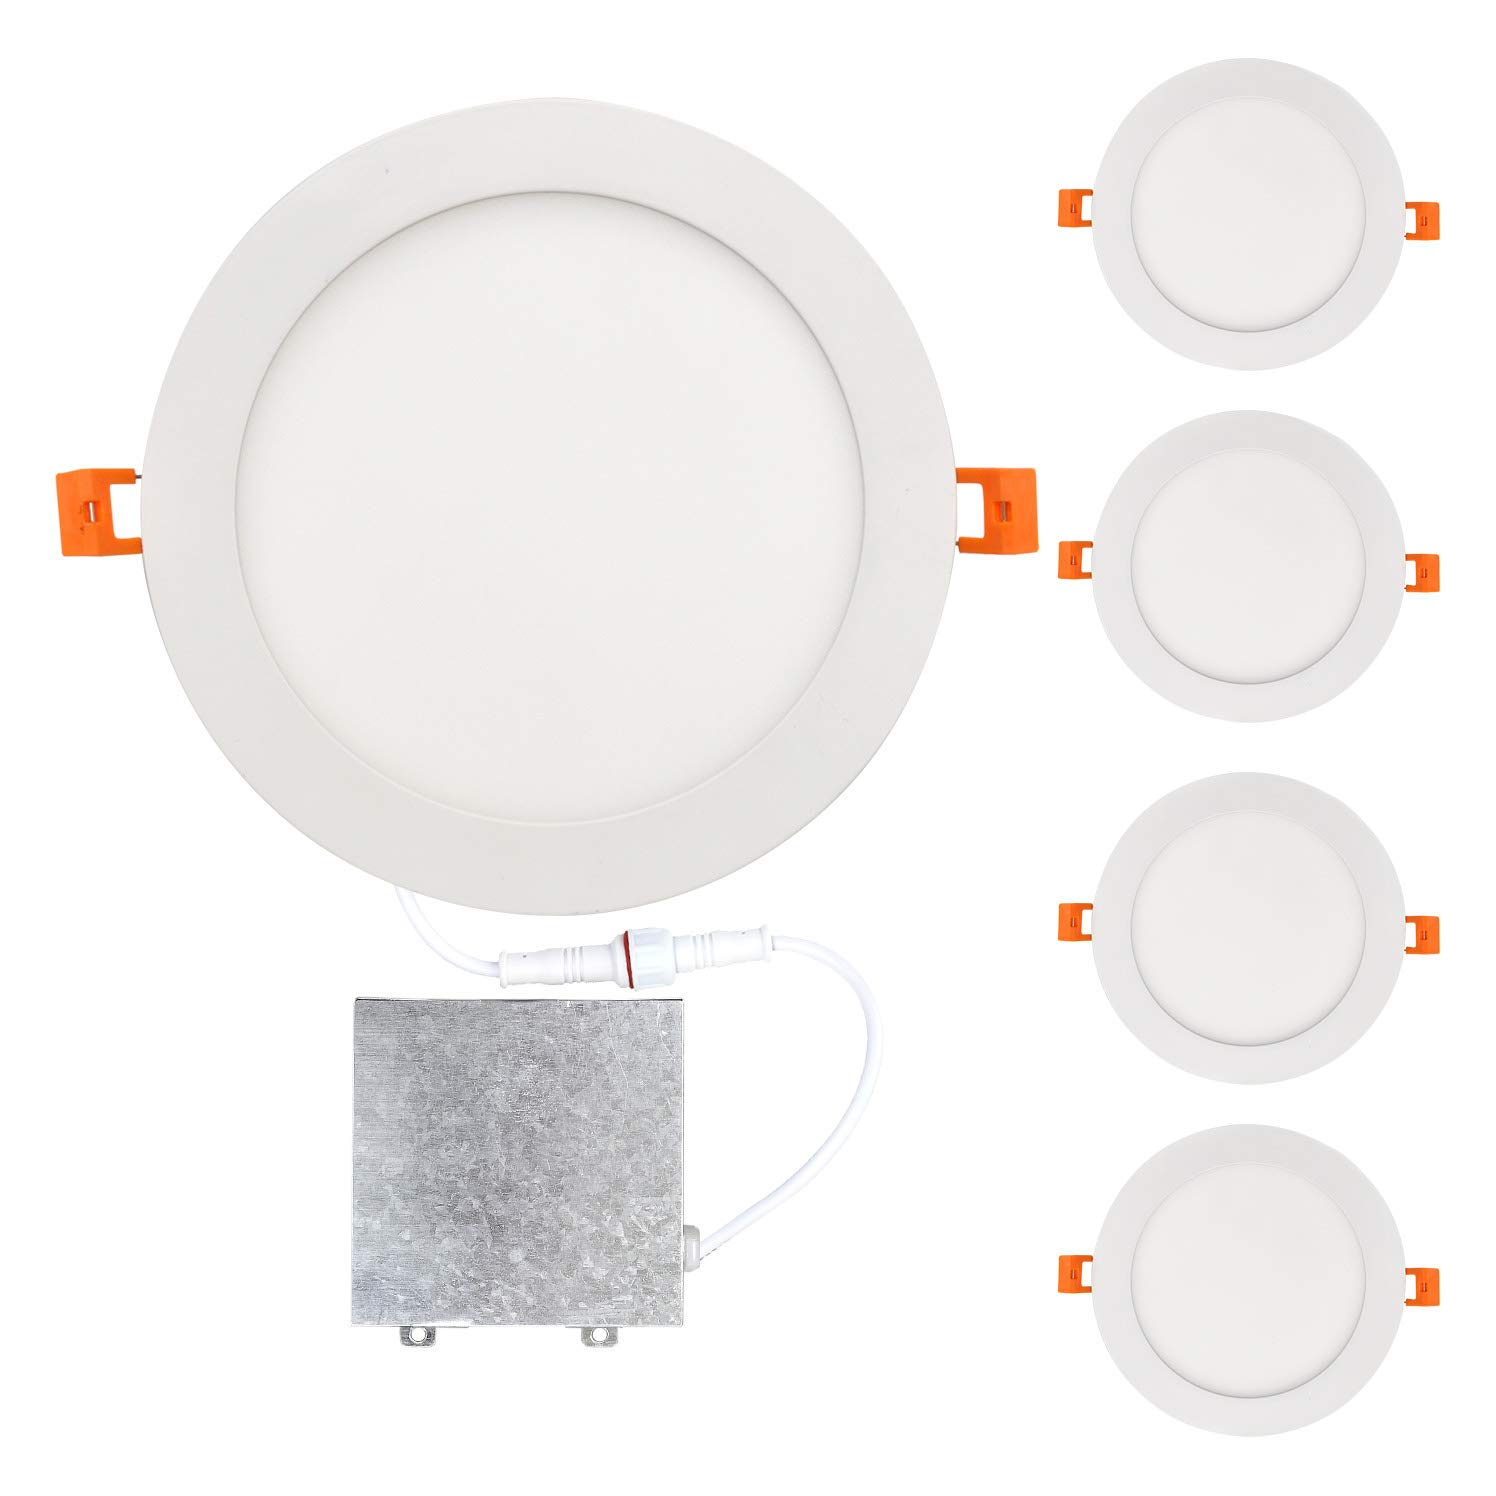 OSTWIN 8 inch 18W (90 Watt Repl.) IC Rated LED Recessed Low Profile Slim Round Panel Light with Junction Box, Dimmable, 5000K Daylight 1350 Lm. No Can Needed, 4 Pack ETL & Energy Star Listed